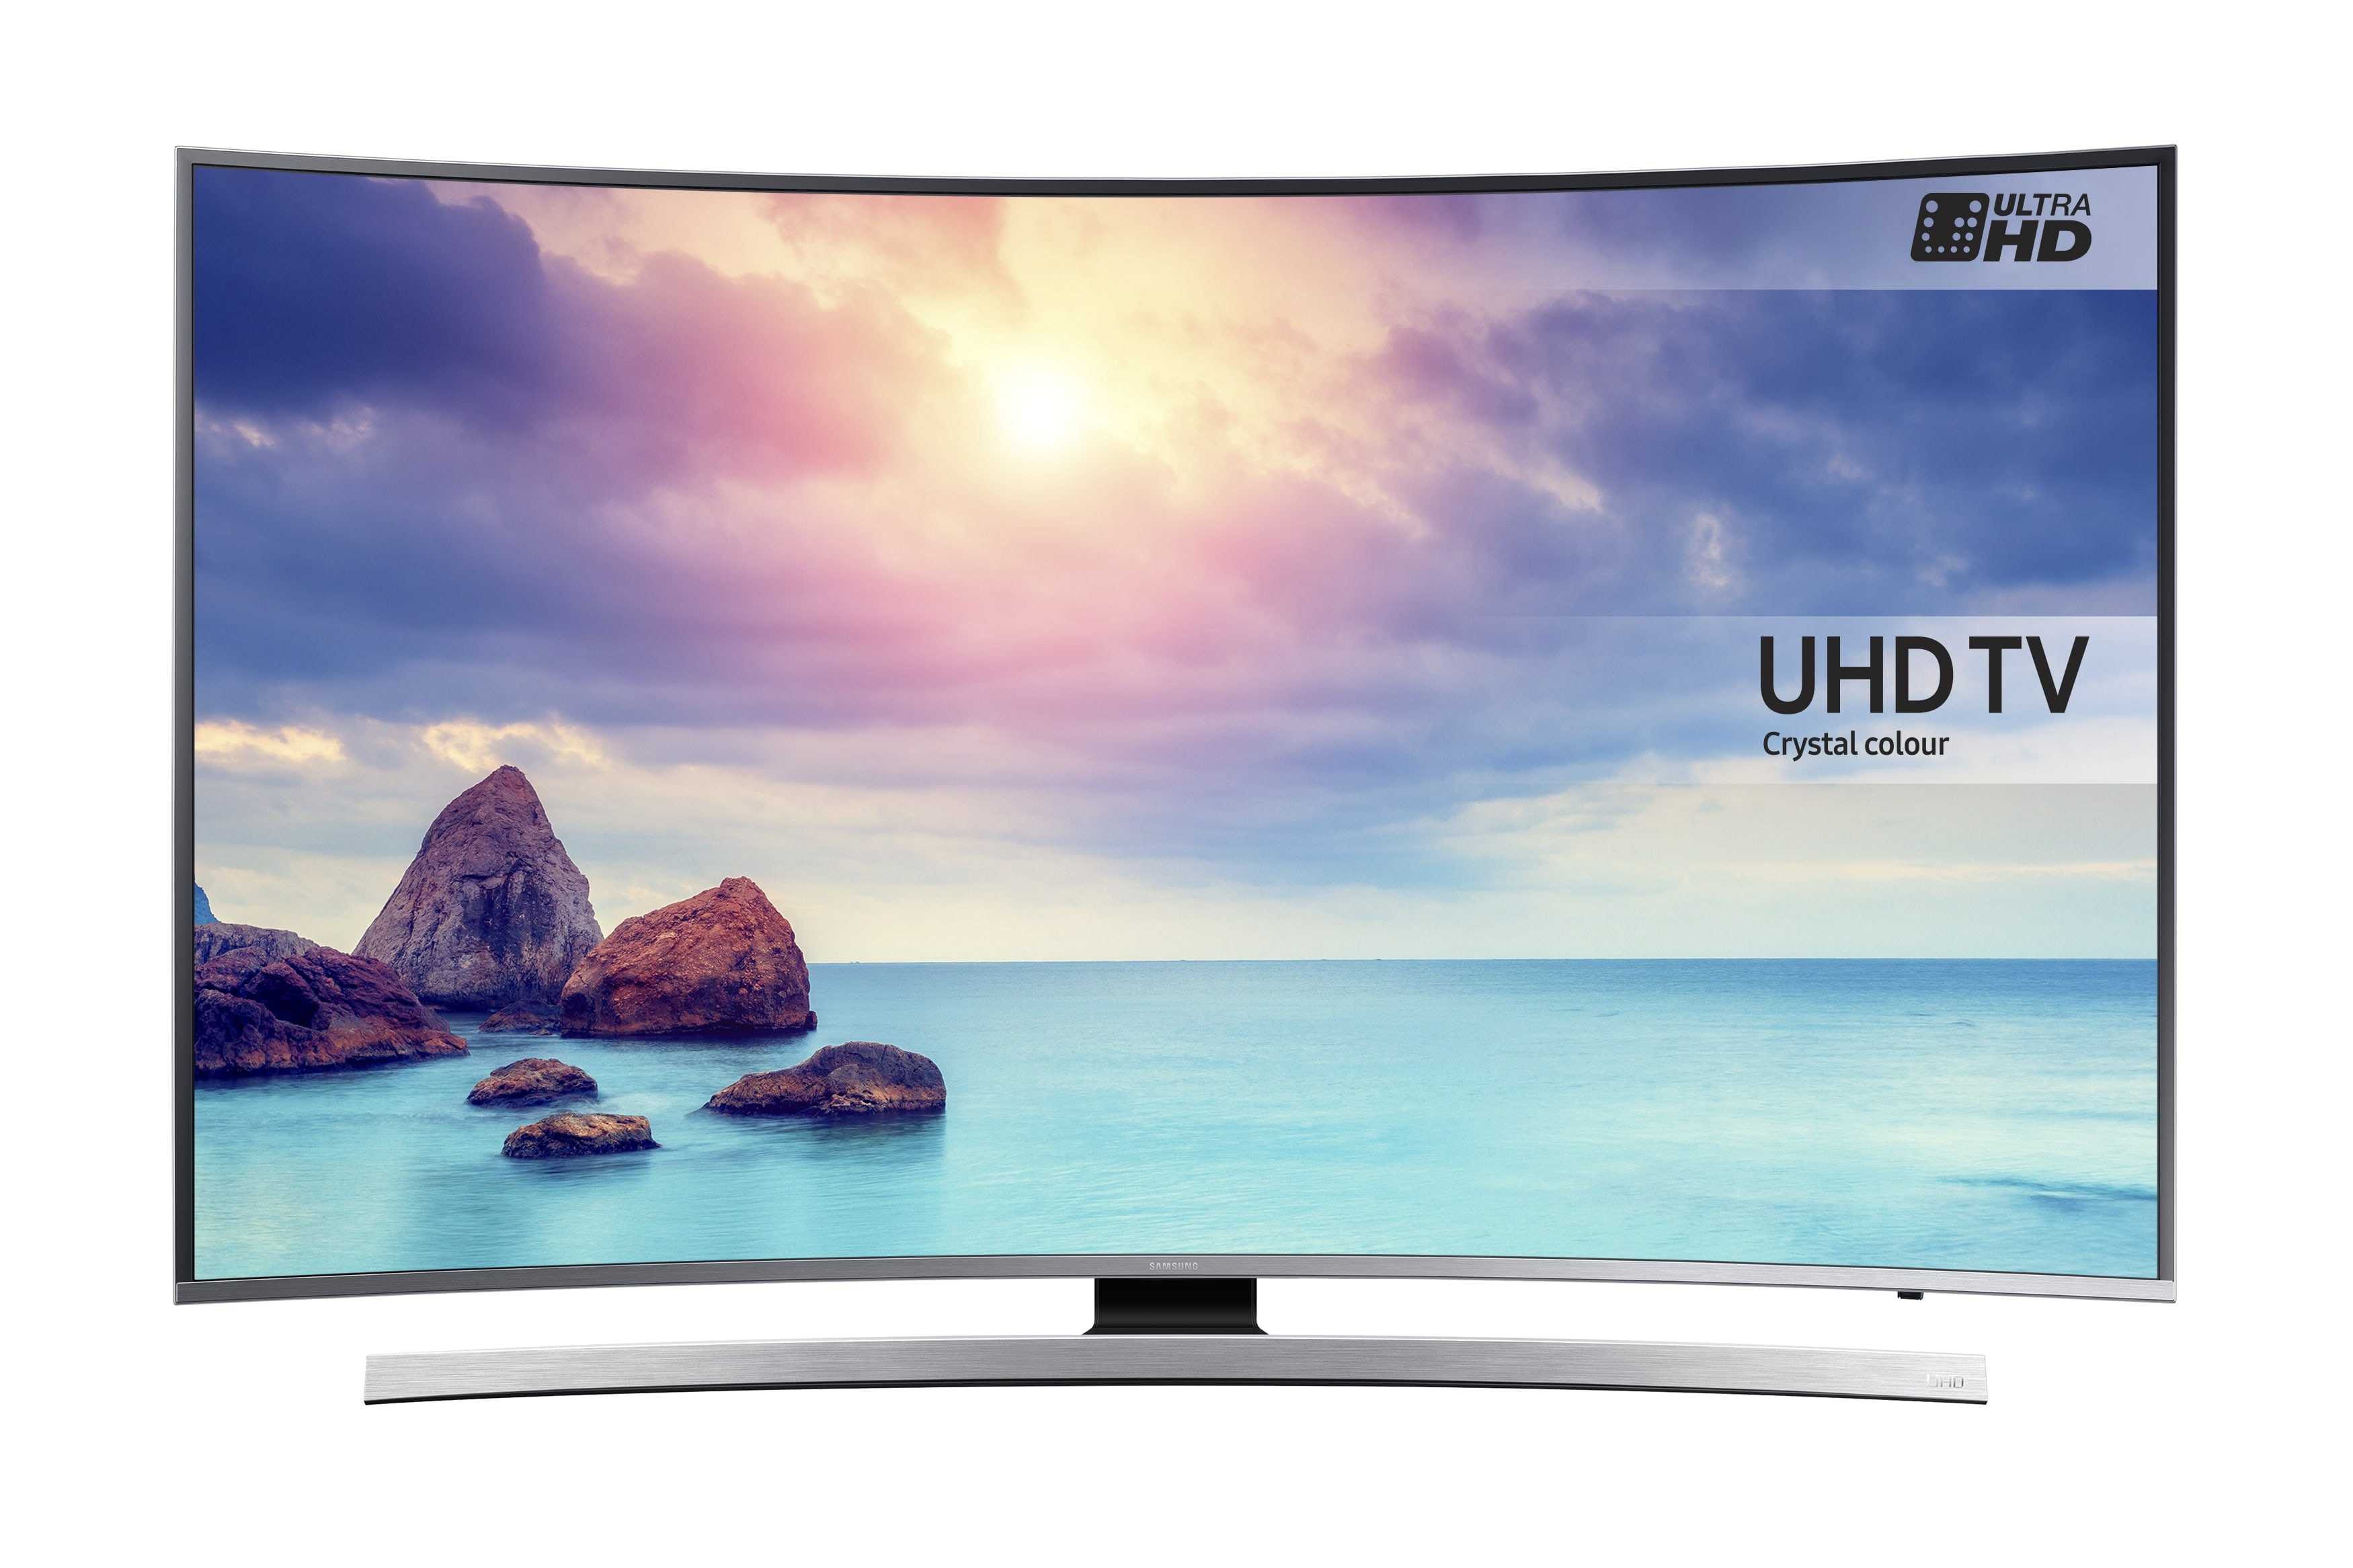 6-Series UHD TV UE43KU6640